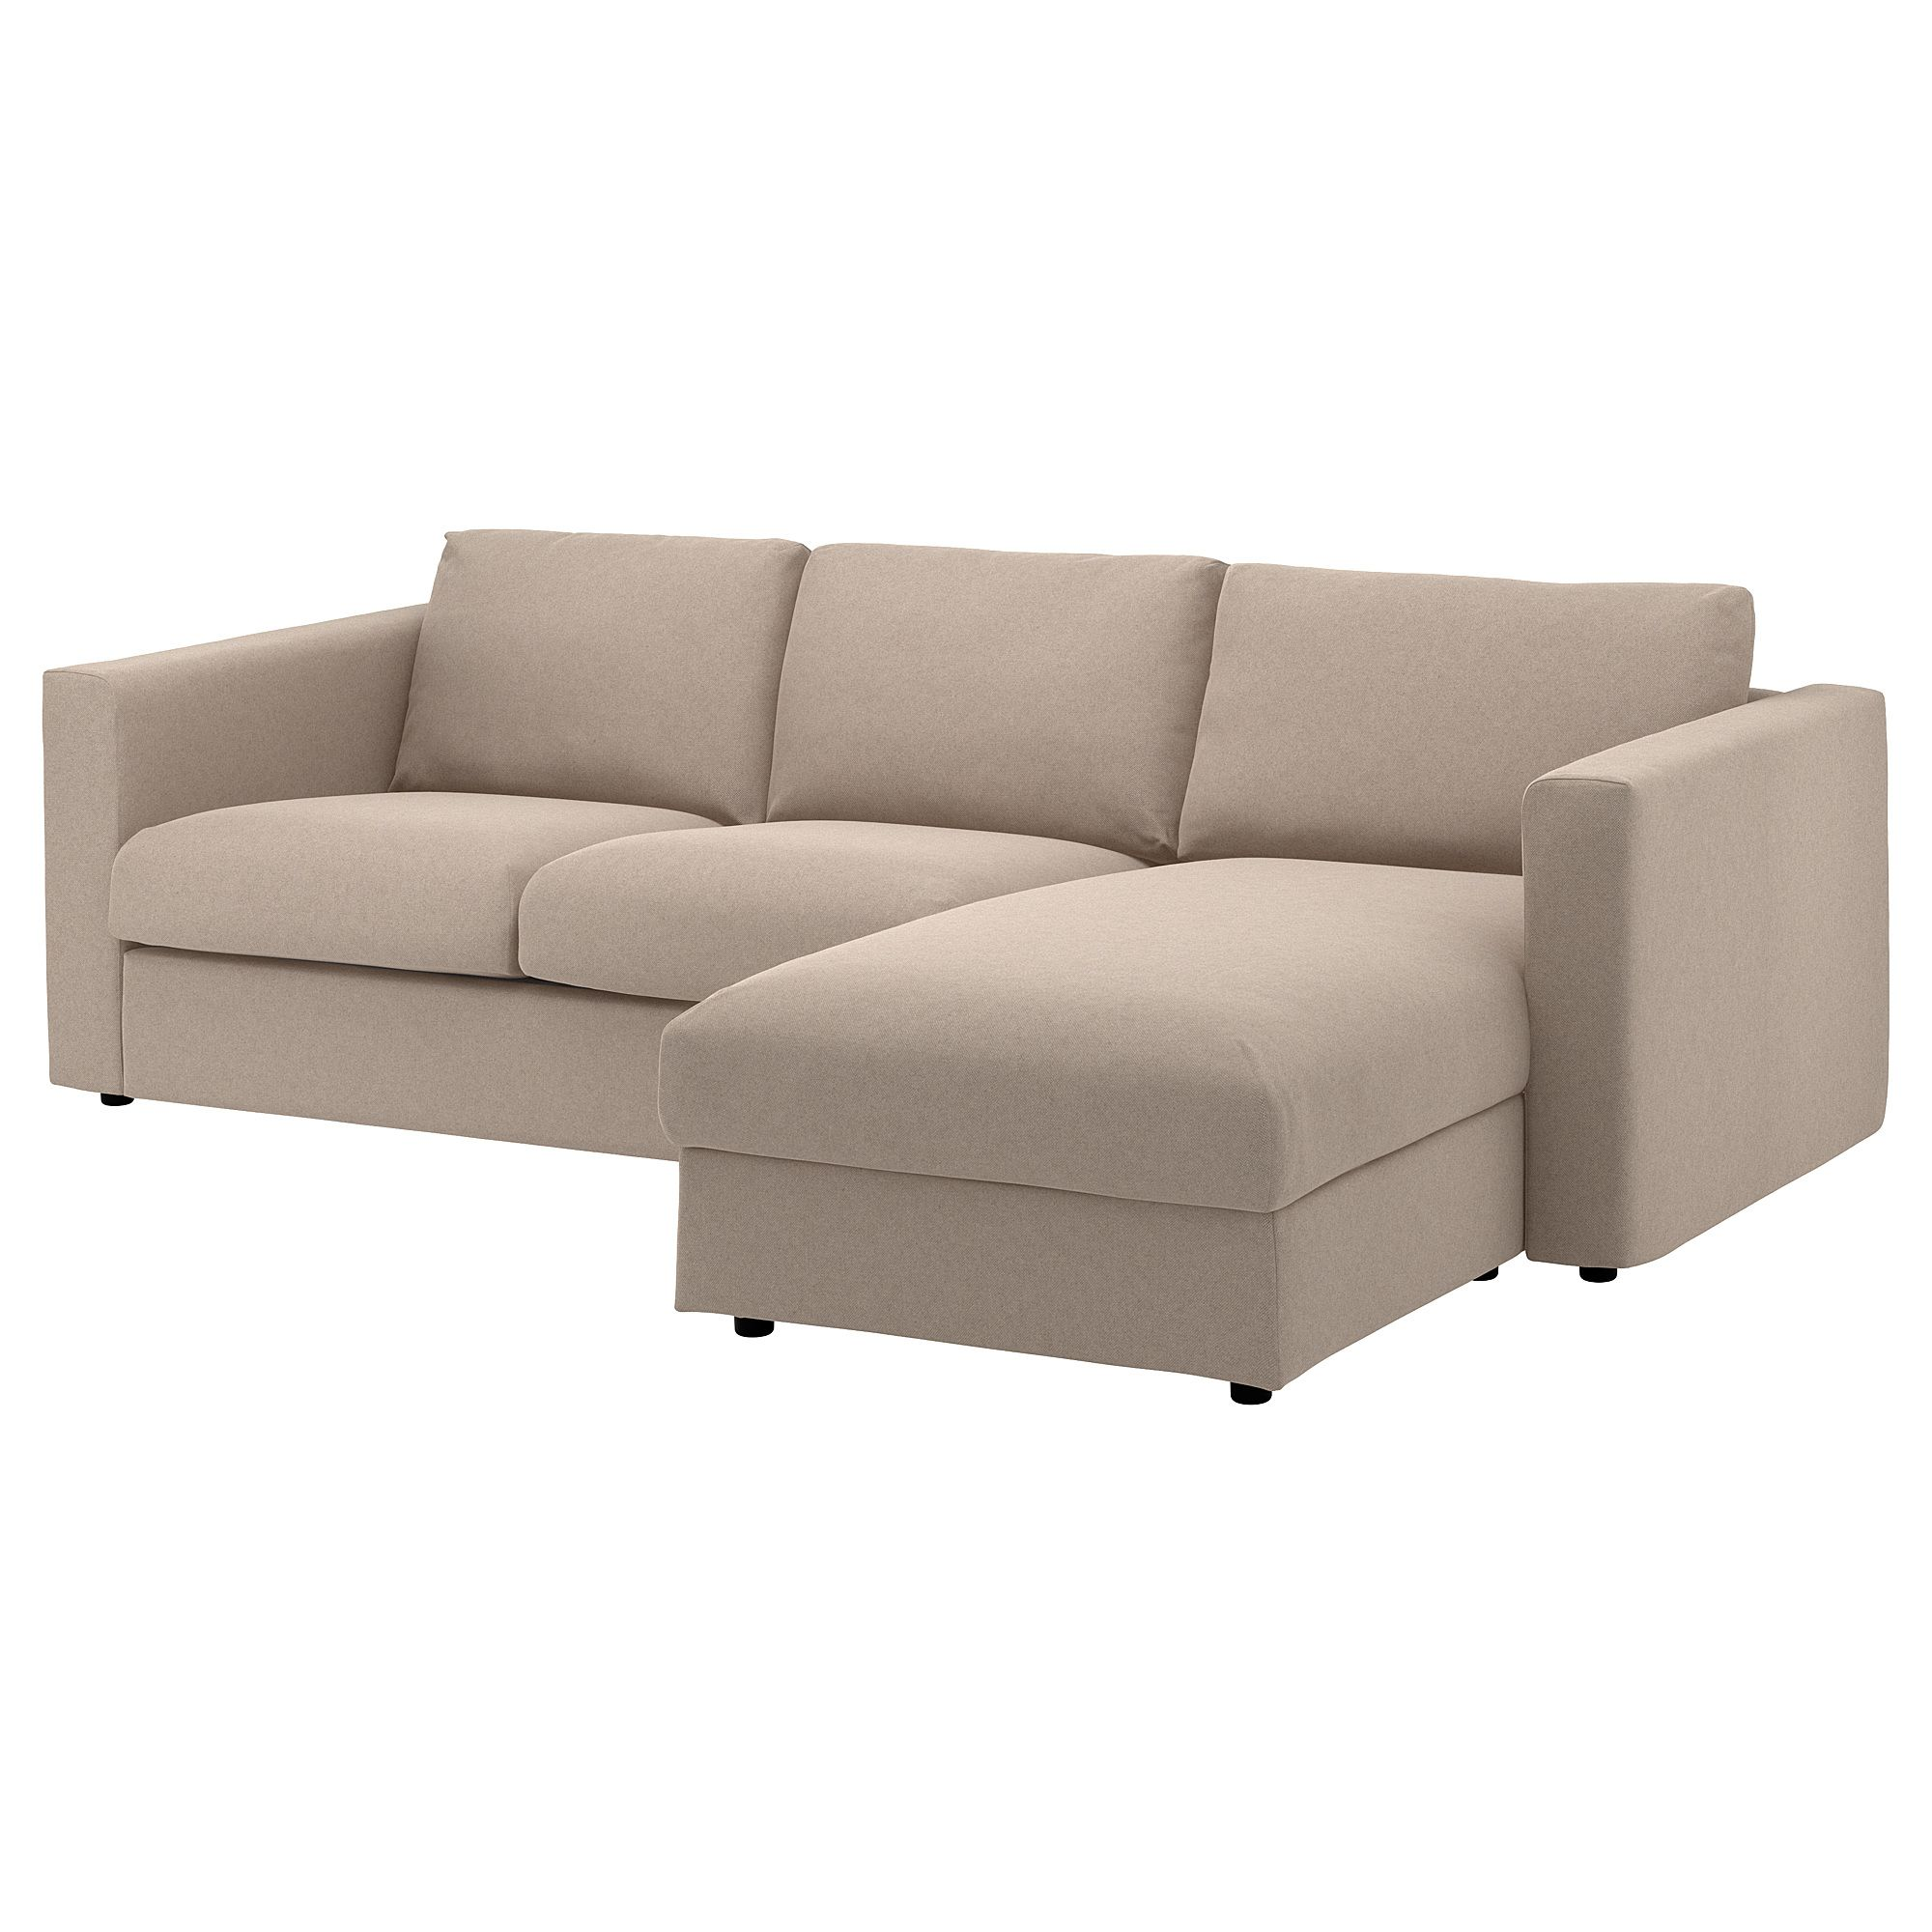 Furniture And Home Furnishings Sofa Bed With Chaise Sofa Sofa